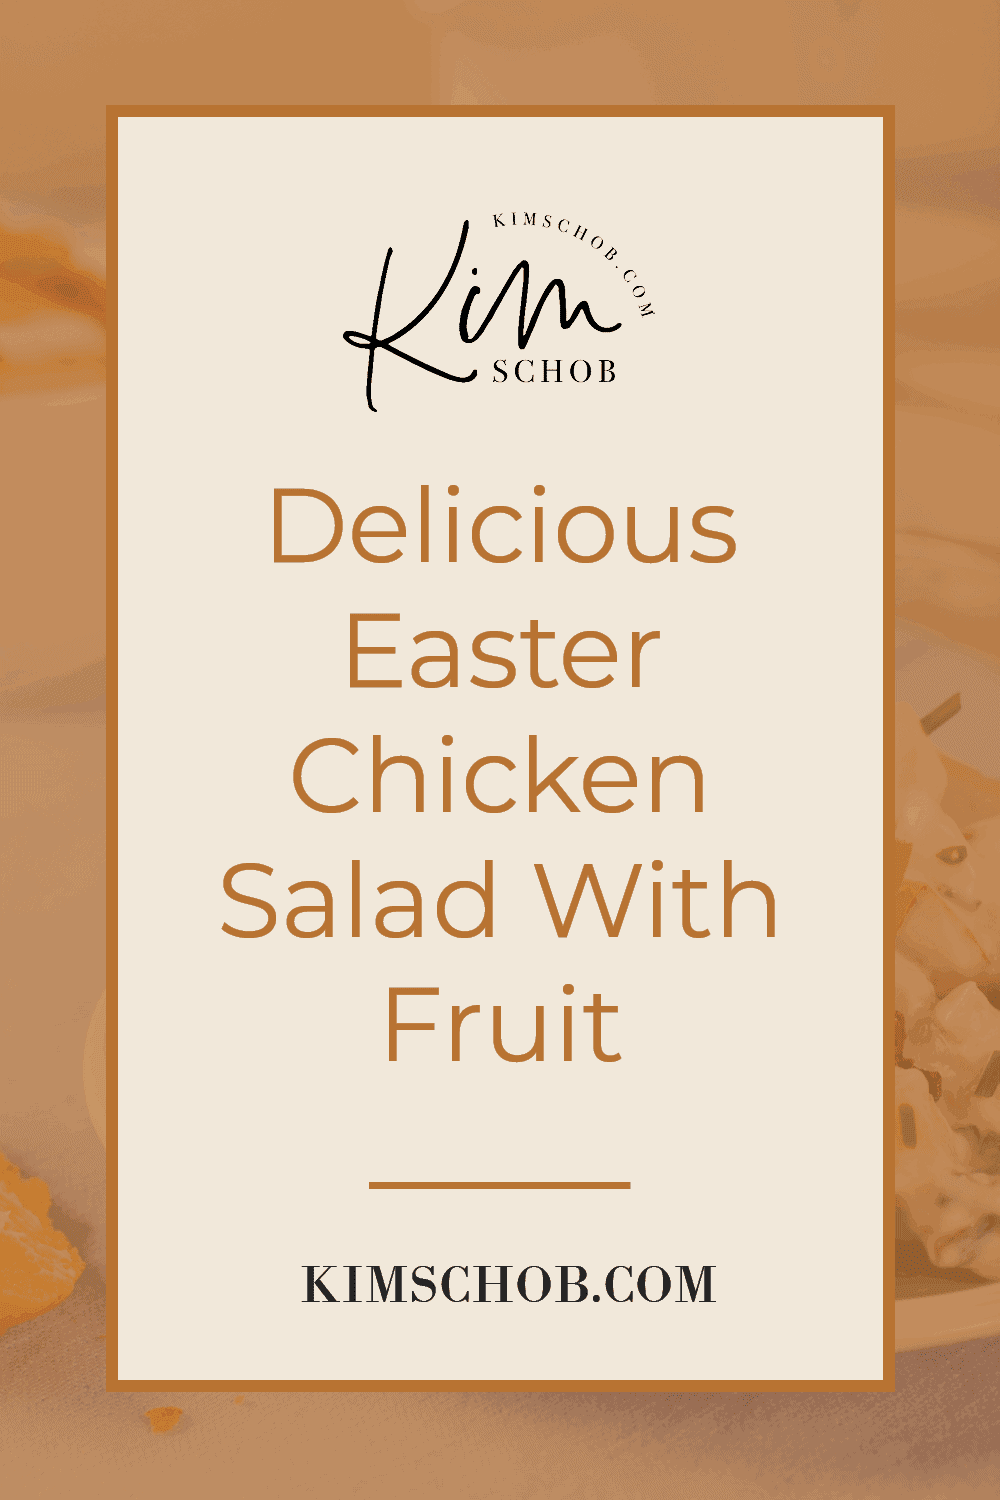 Delicious-Easter-Chicken-Salad-With-Fruit